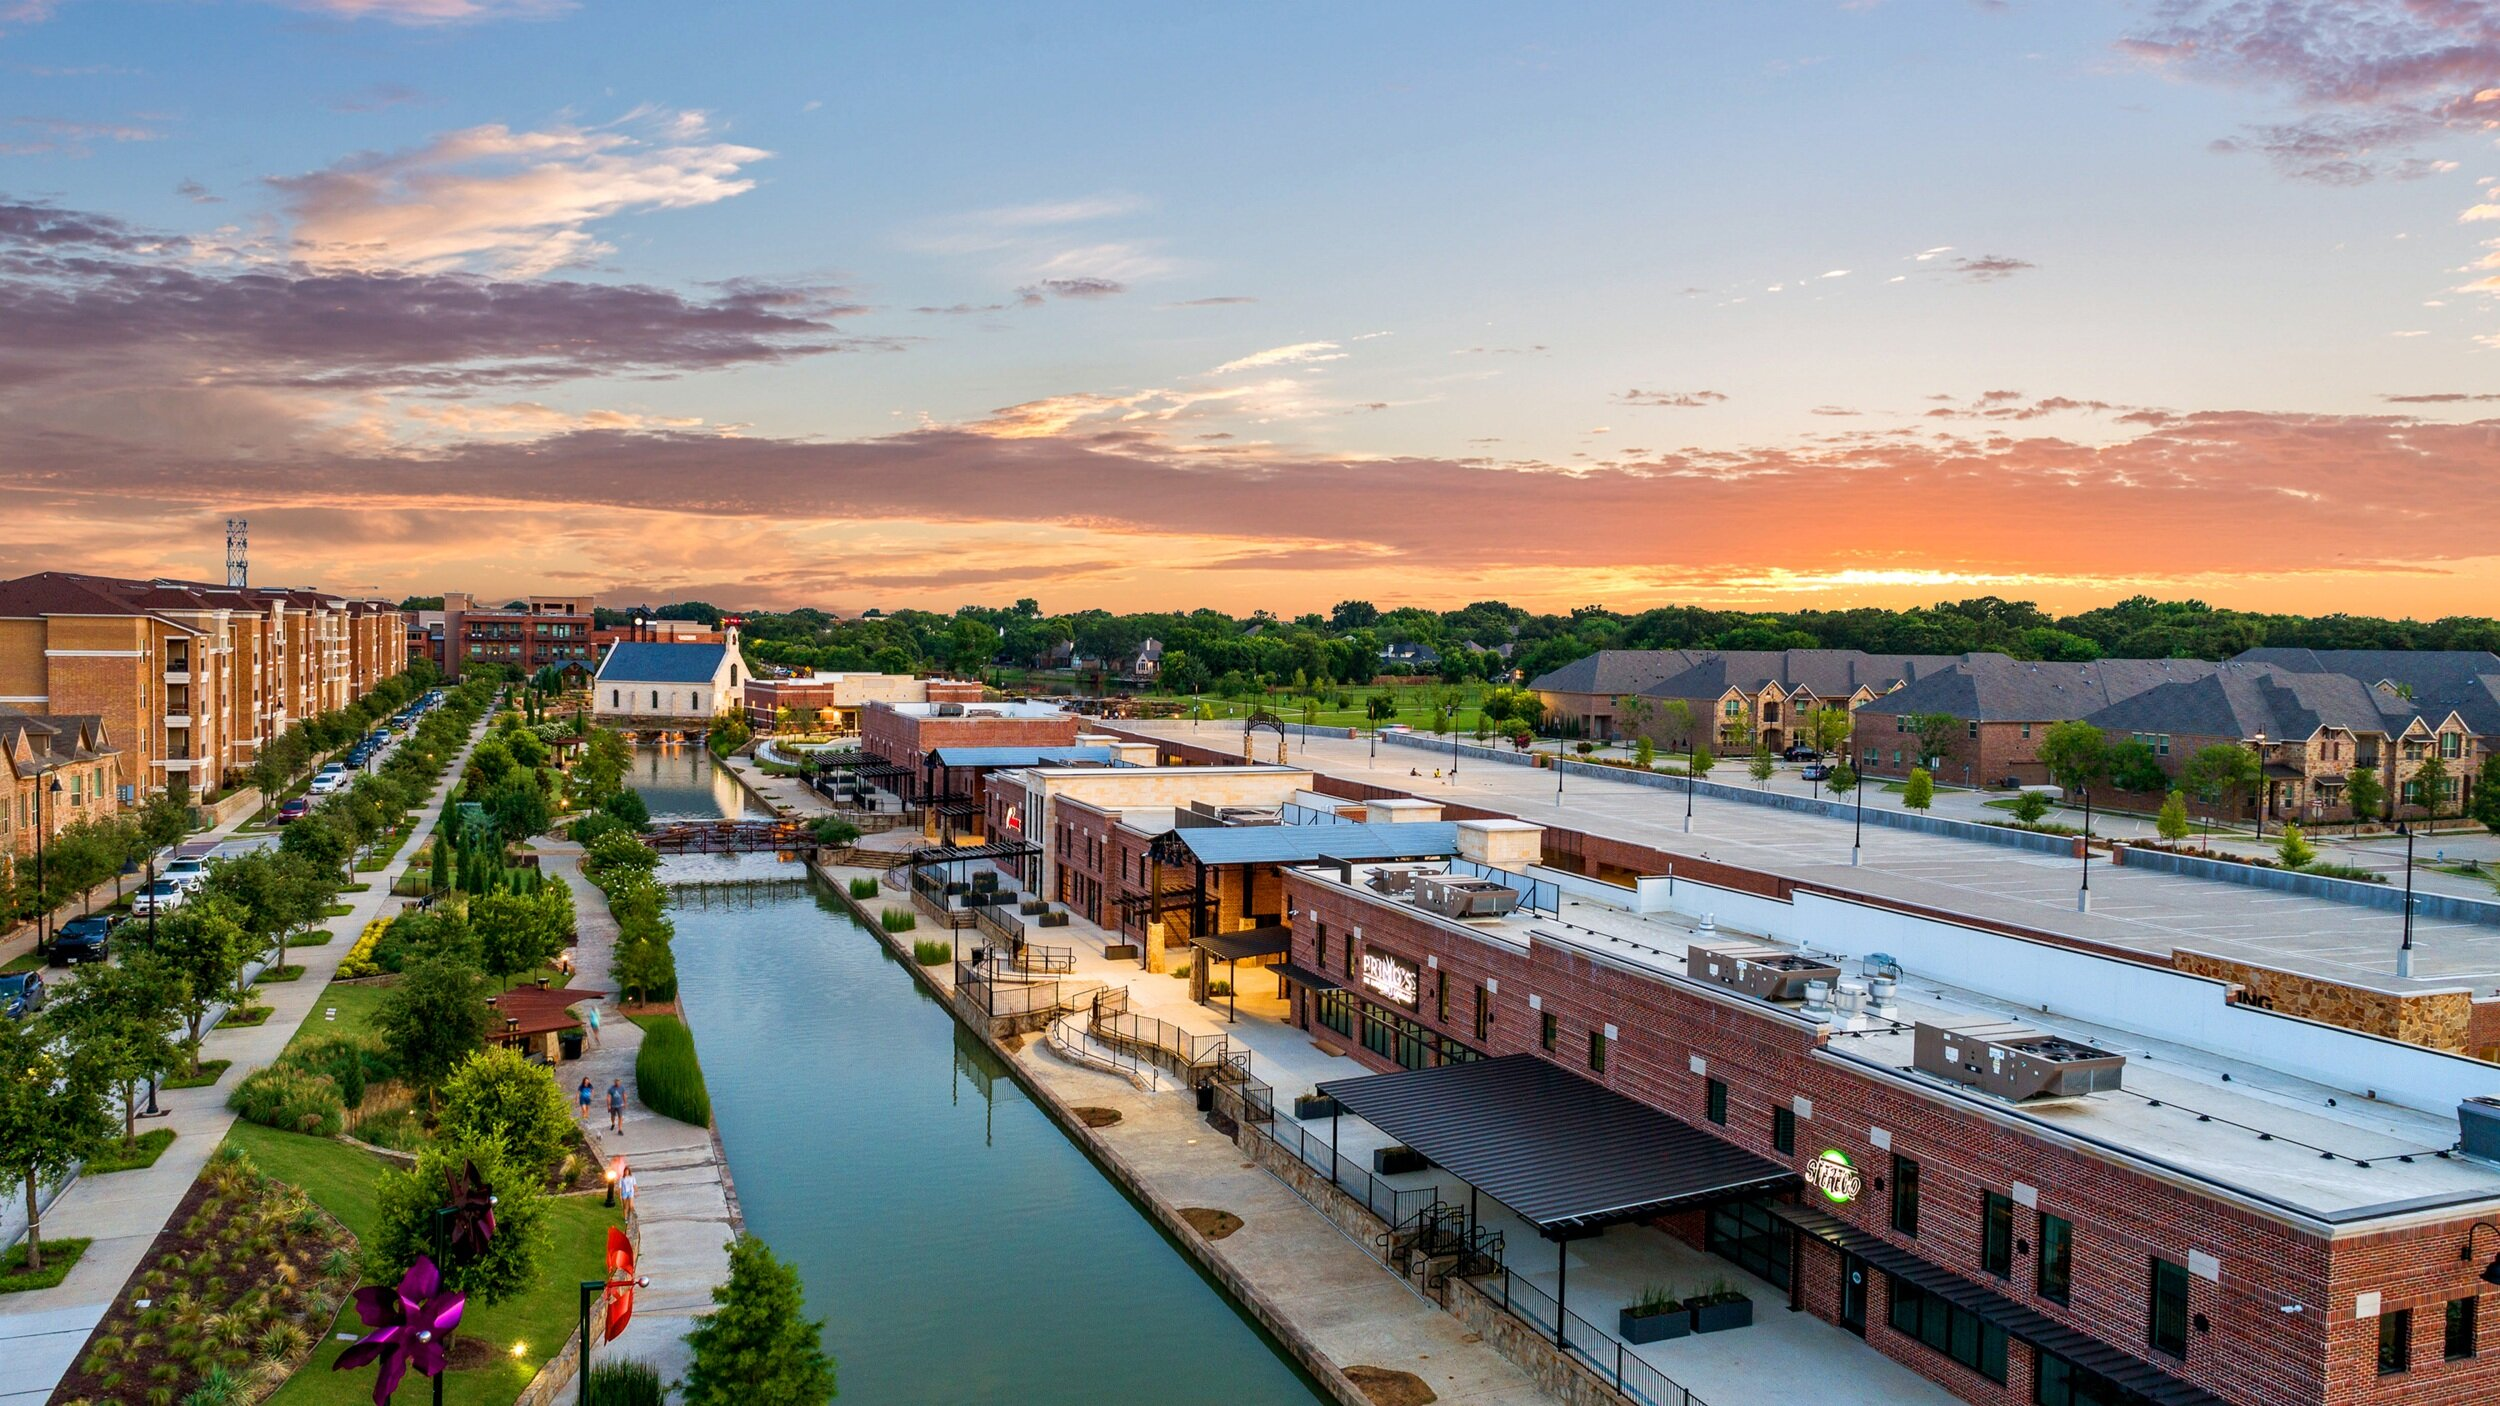 Top 10 Things to Do in Flower Mound, Texas [Updated for 2021]